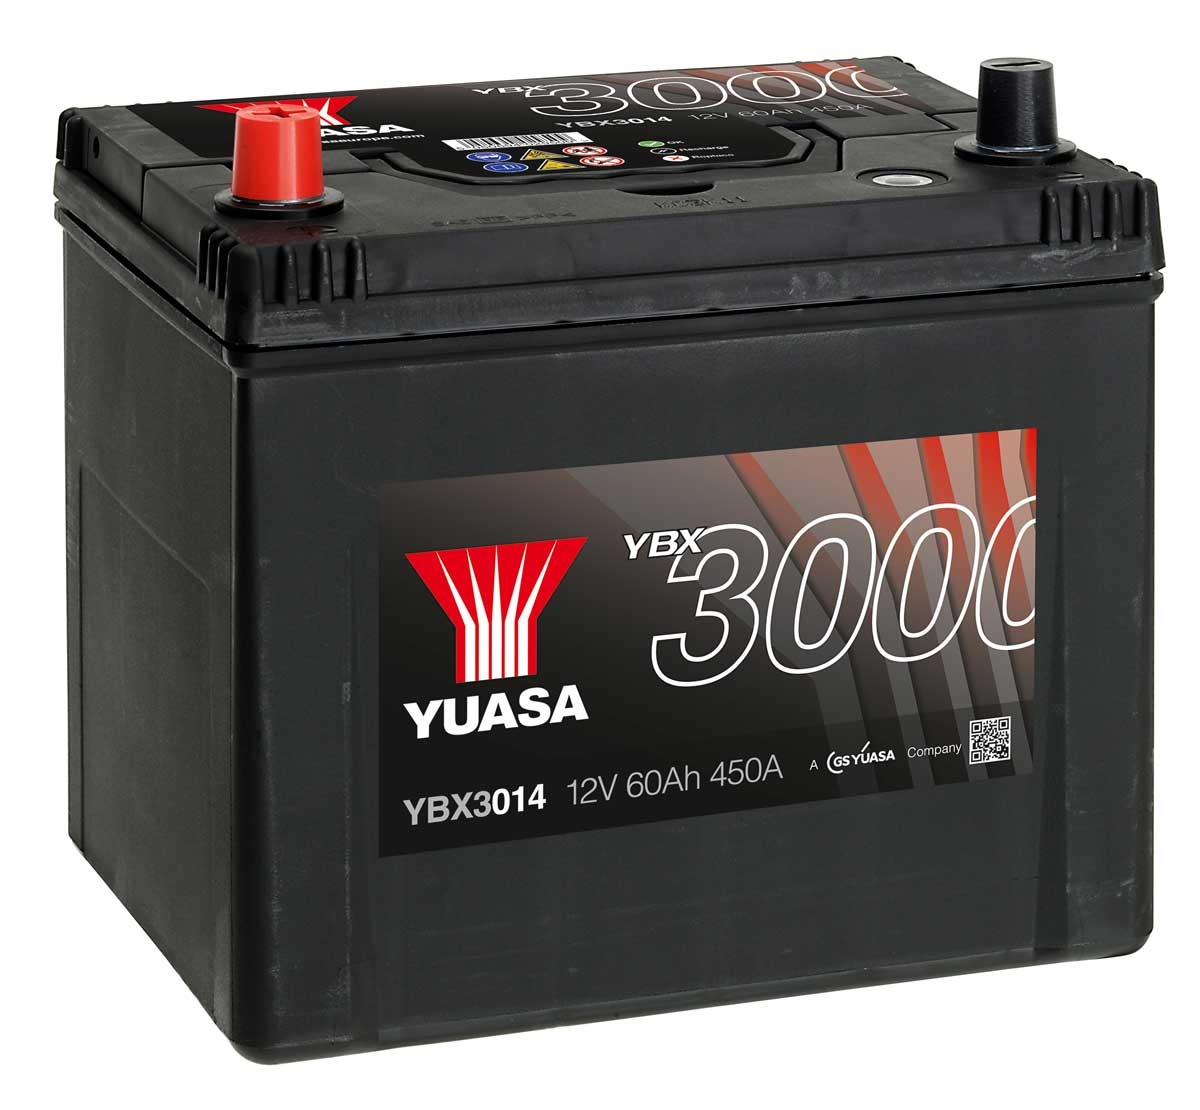 yuasa ybx3014 12v smf car battery inc free deliverty mds. Black Bedroom Furniture Sets. Home Design Ideas